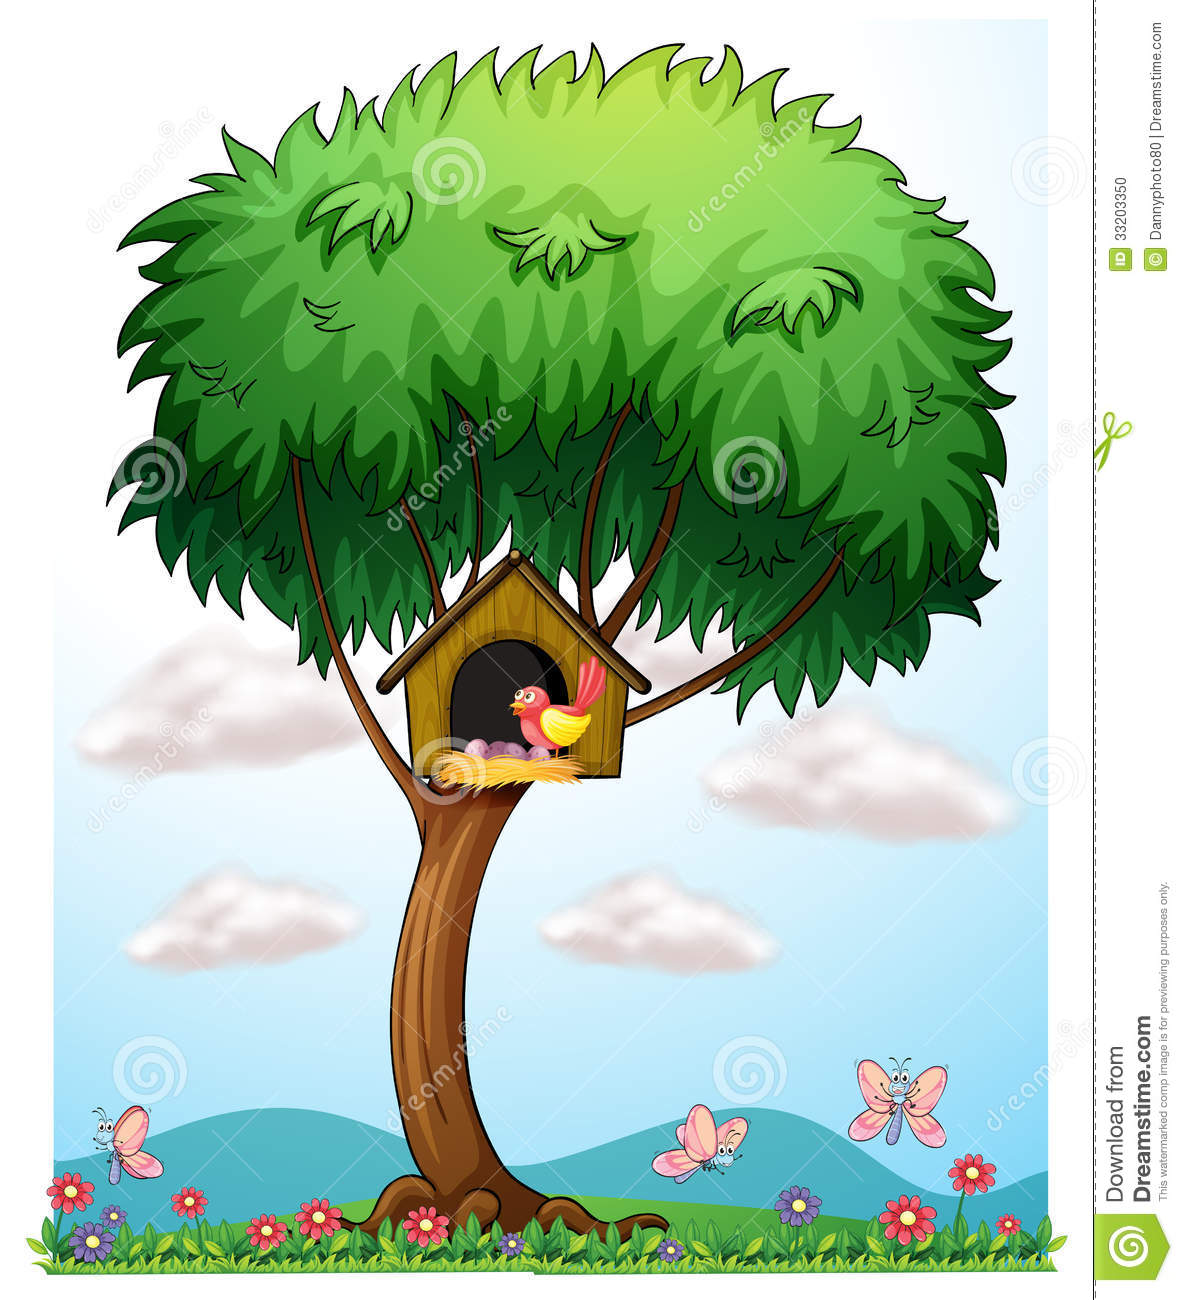 ein vogel in einem baum mit einem vogelhaus vektor abbildung illustration von betriebe gr n. Black Bedroom Furniture Sets. Home Design Ideas